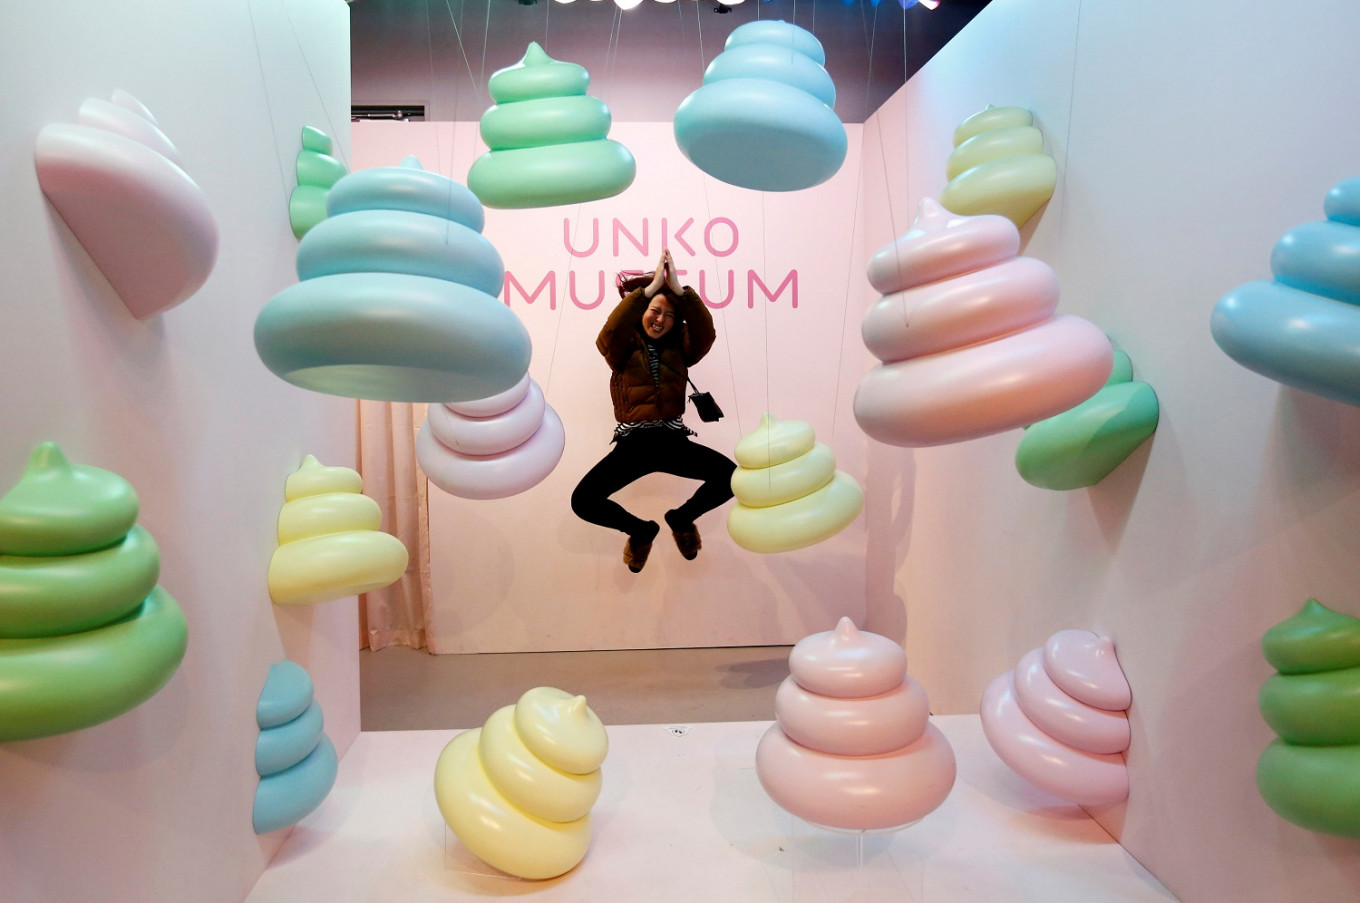 Japanese museum show tries to clean up poop's image